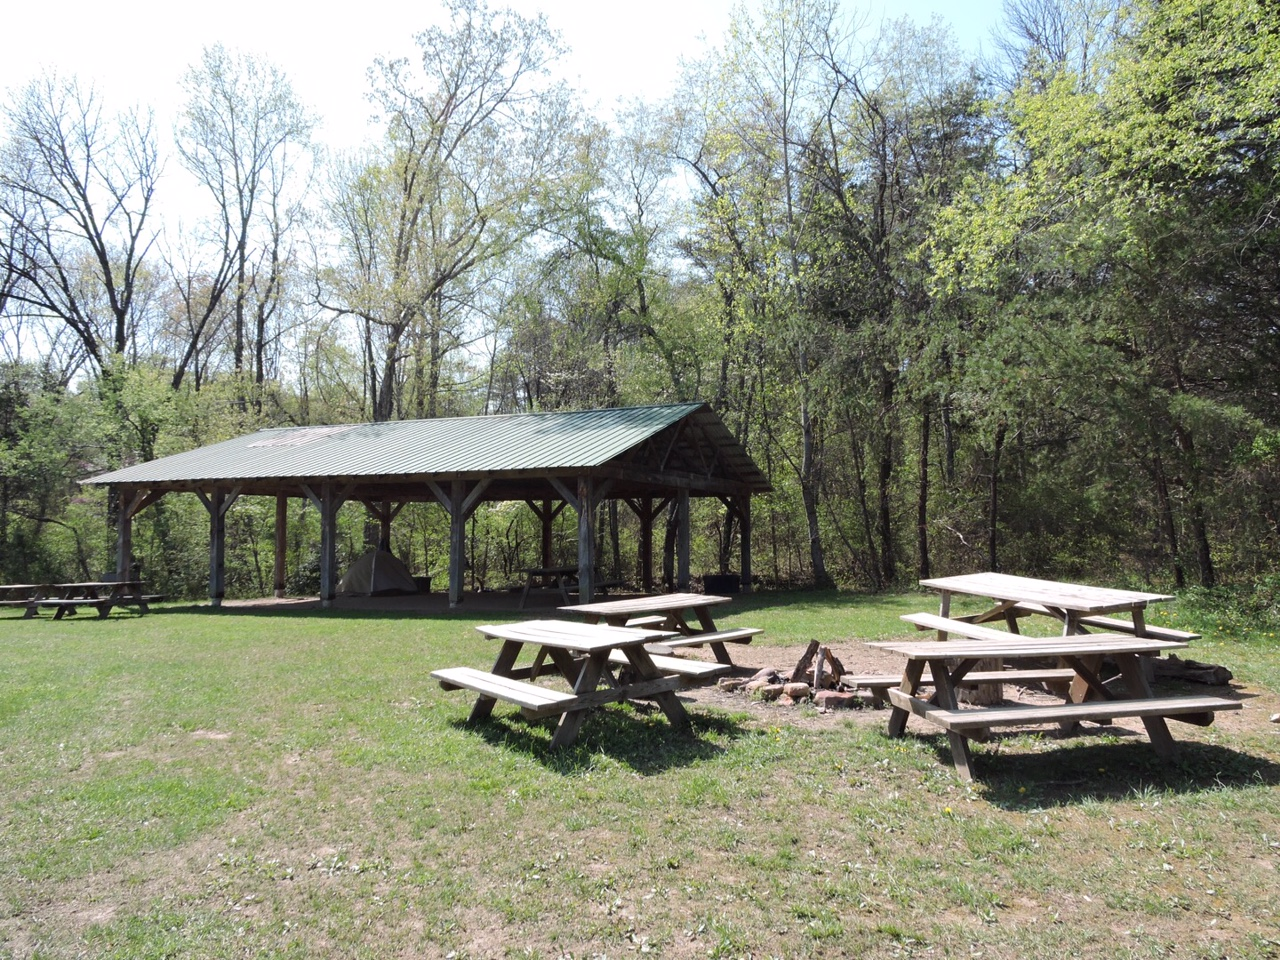 Accessible by a separate entrance to our property, is our largest campsite. It is equipped with a pavilion, large fire ring, camp grill, picnic table, and Port-a-Potties during the summer season. There is about a ten minute walk to thebathhouse, water pump, and the free Base Camp activities.  Nightly Fee: $50 plus $10 per person.